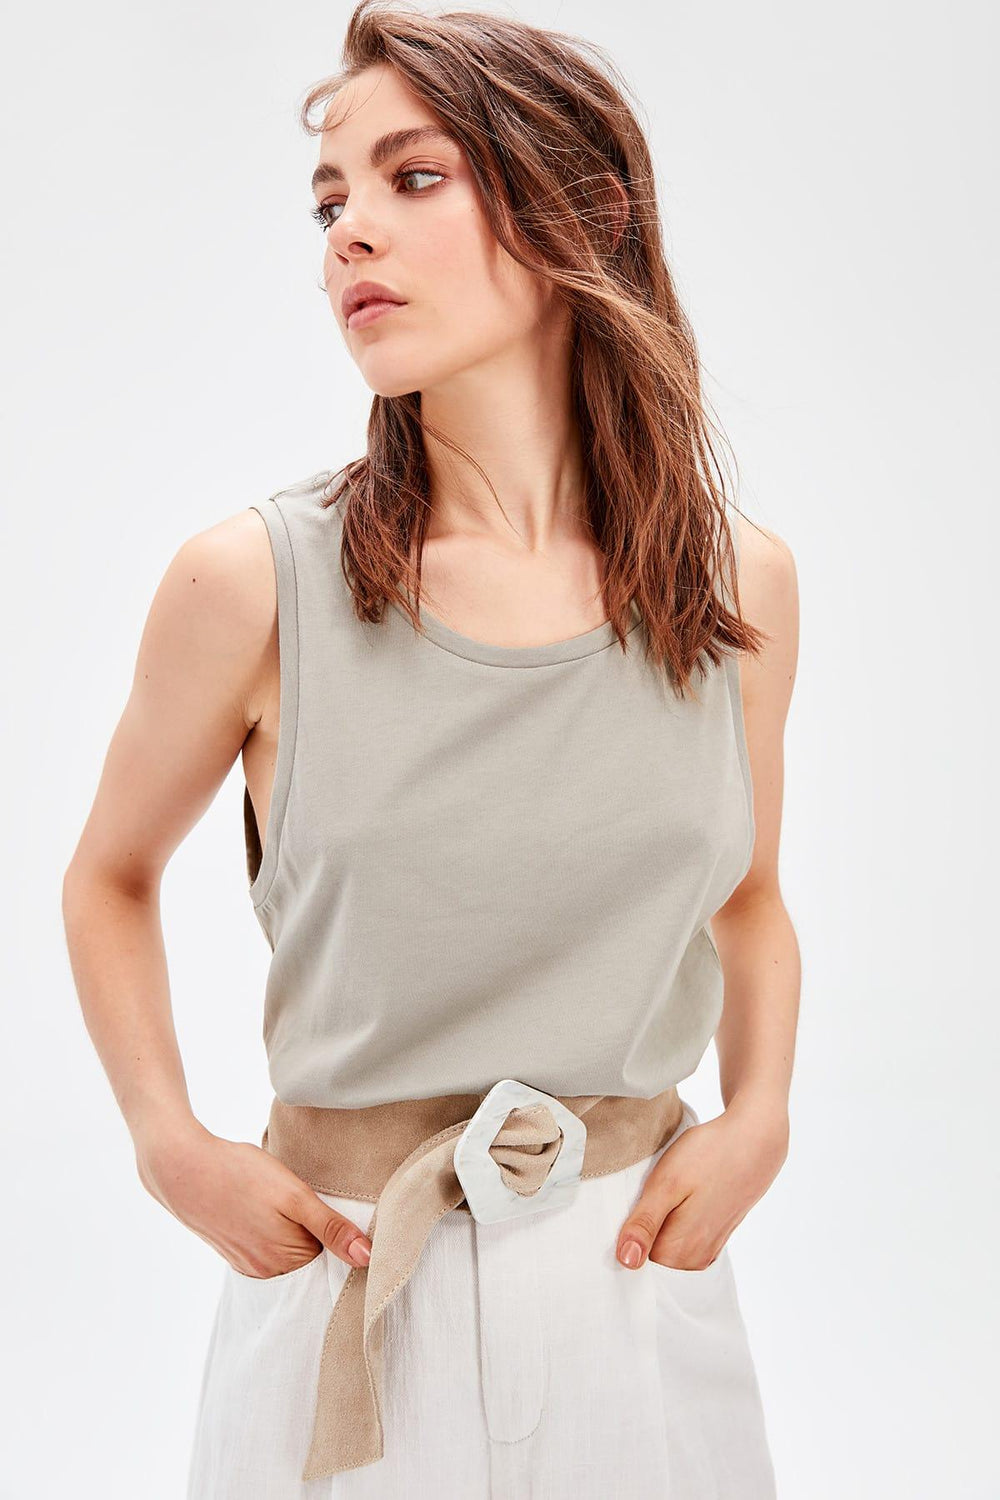 Miss Zut Miss Zut Khaki Knitted Undershirt Miss Zut &CO